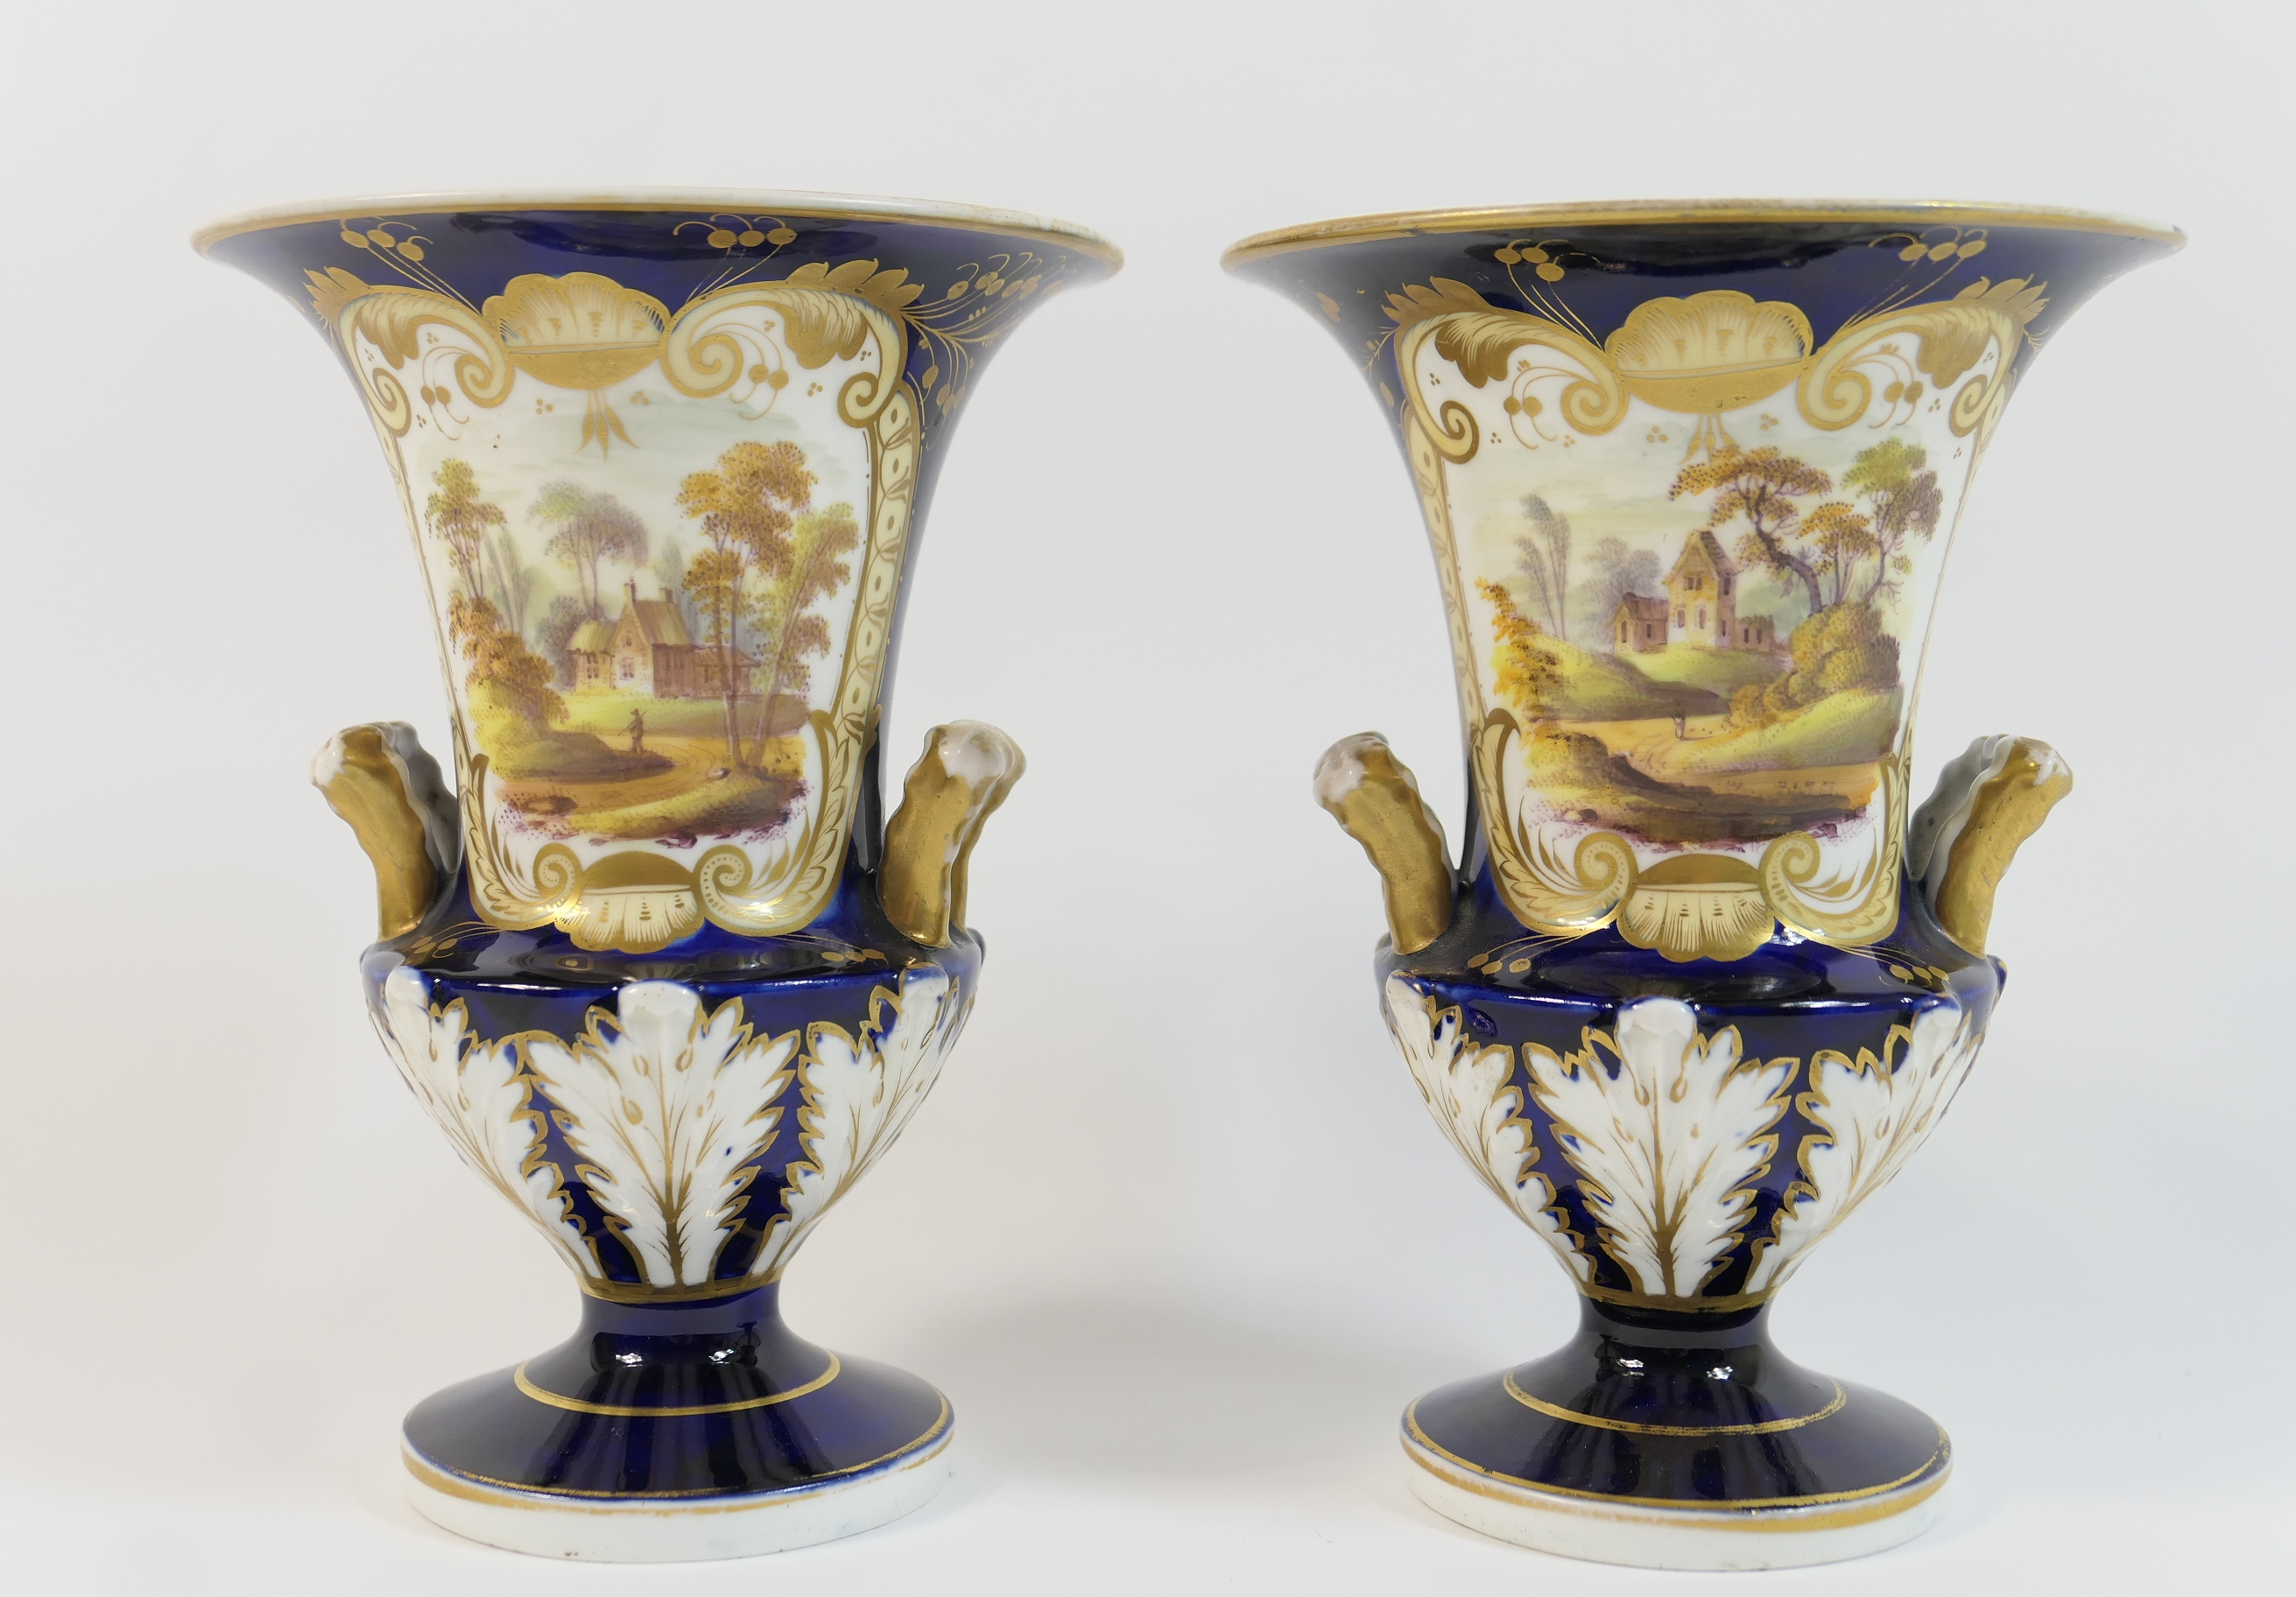 Lot 16 - Pair of Victorian china vases, circa 1845, of slender campagna form, decorated with a landscape